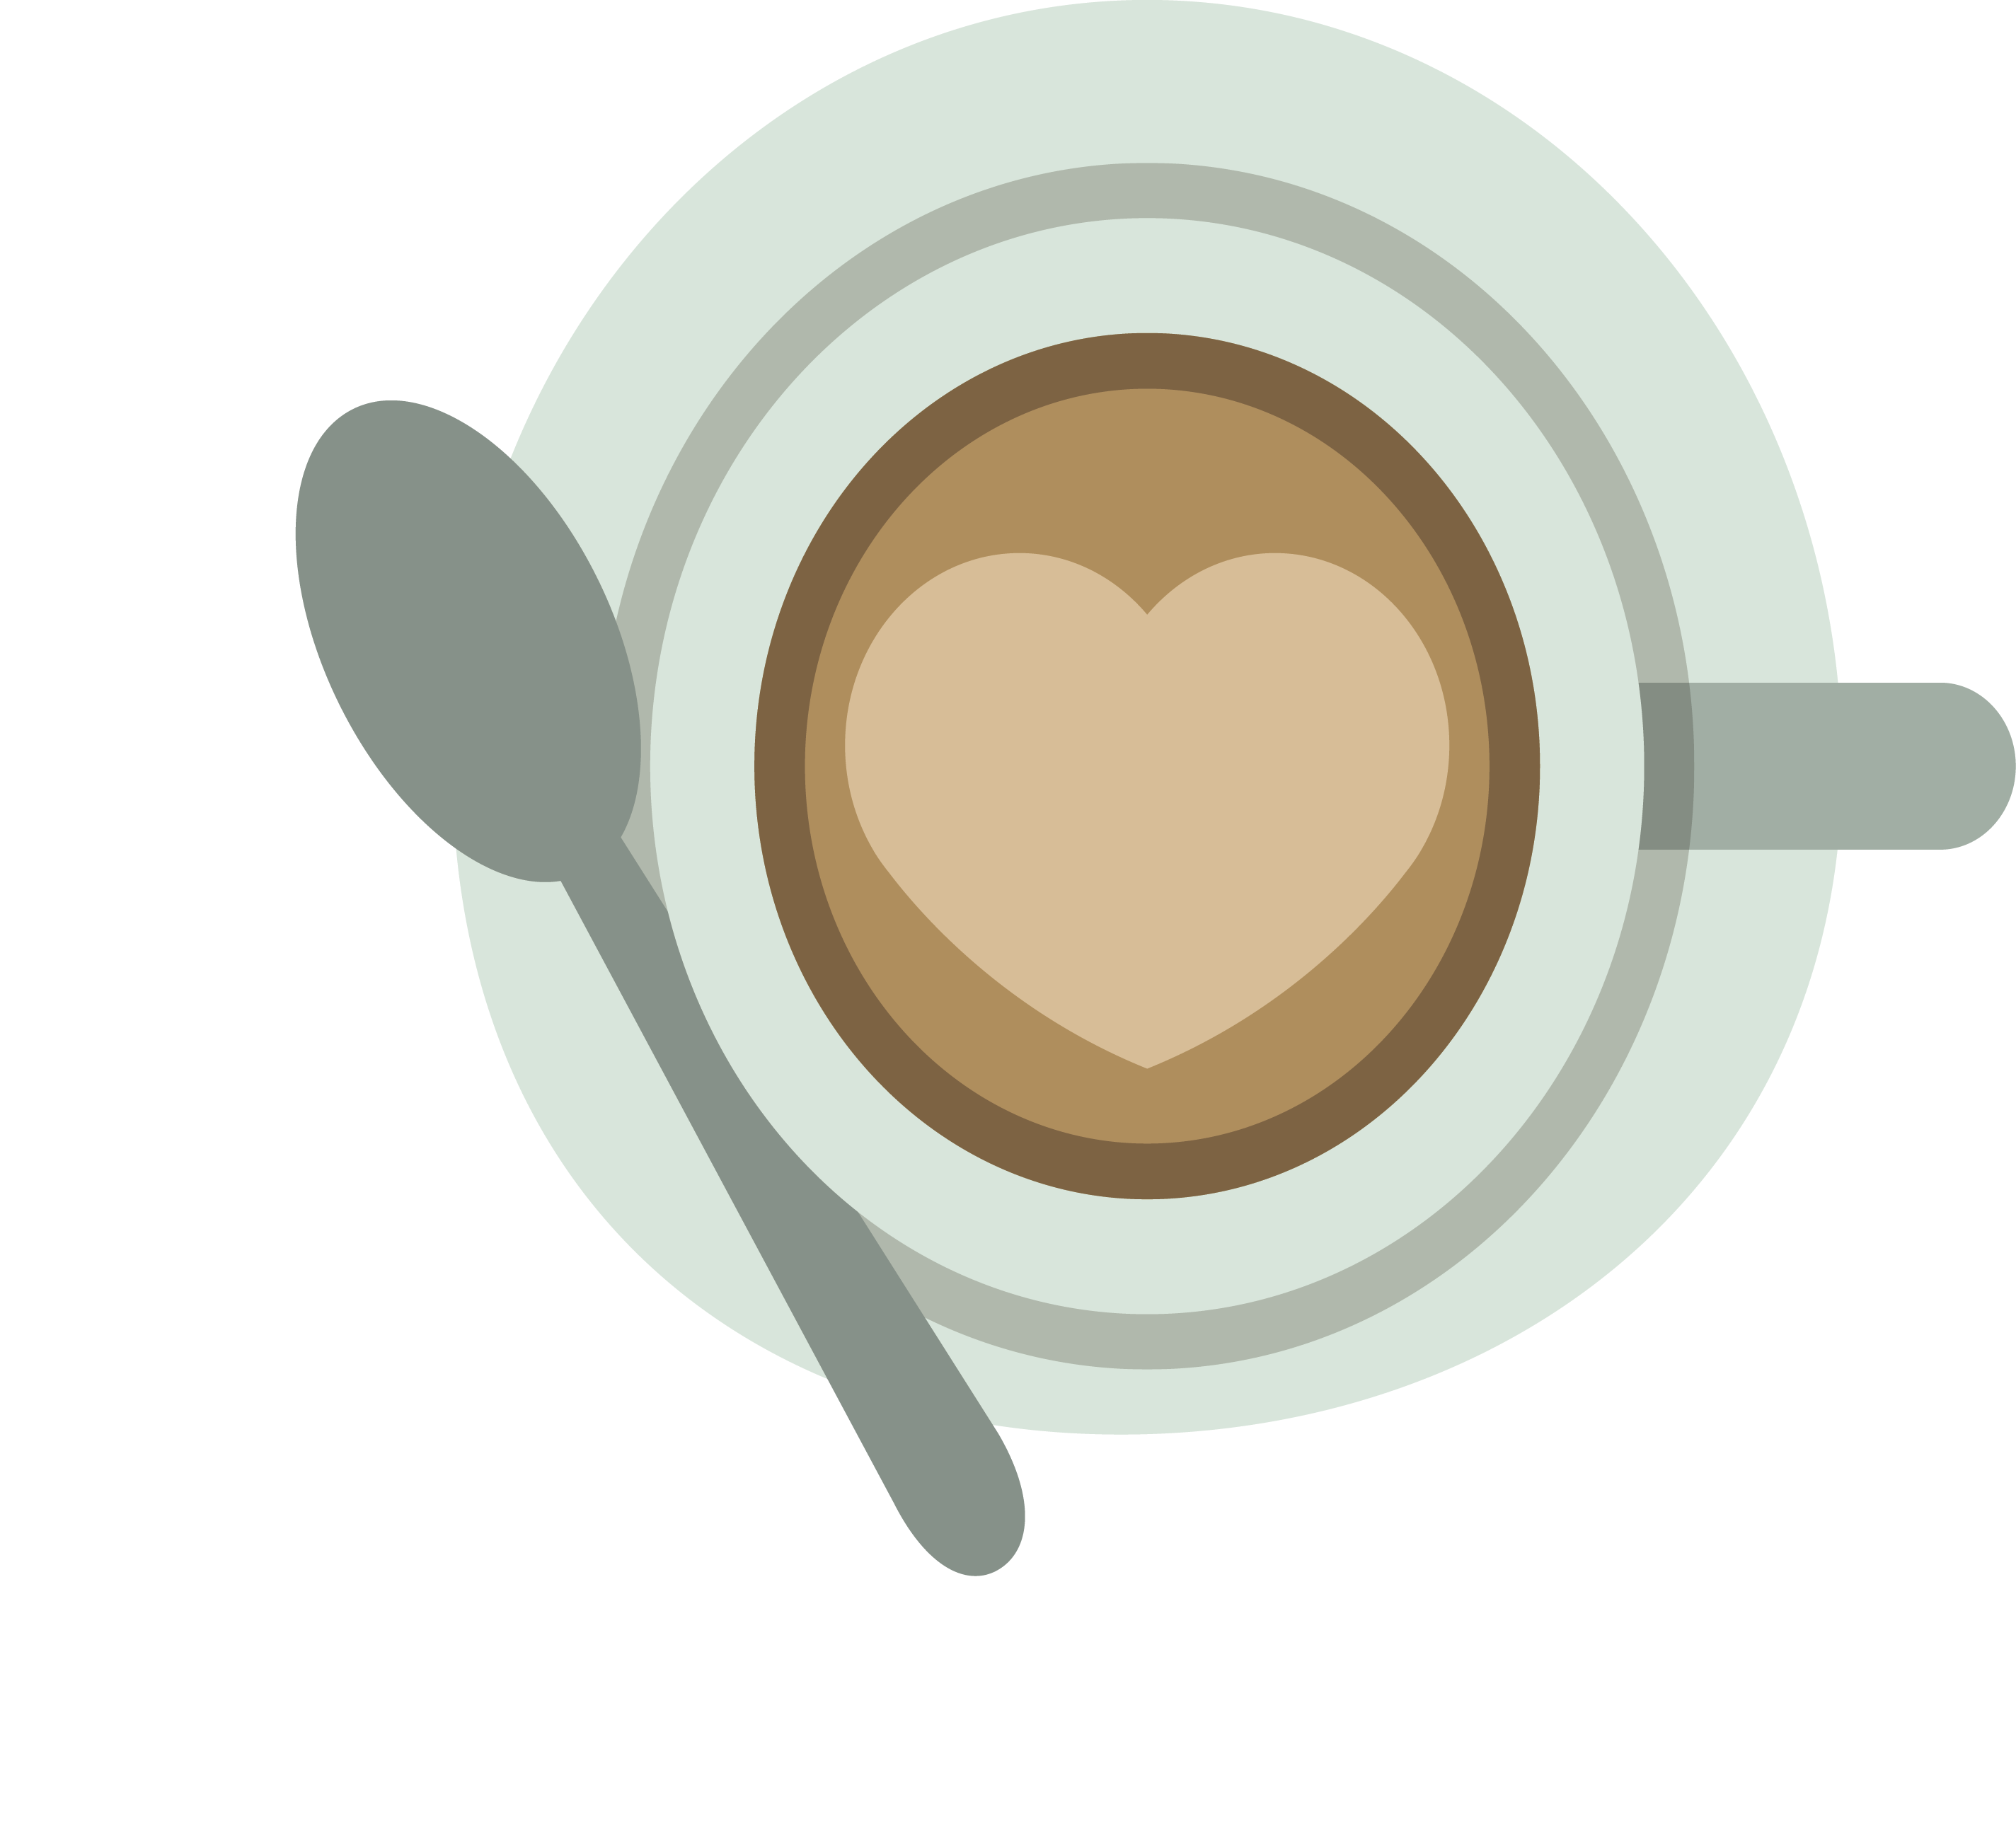 Hearts clipart coffee cup. Cafe drawing cartoon heart